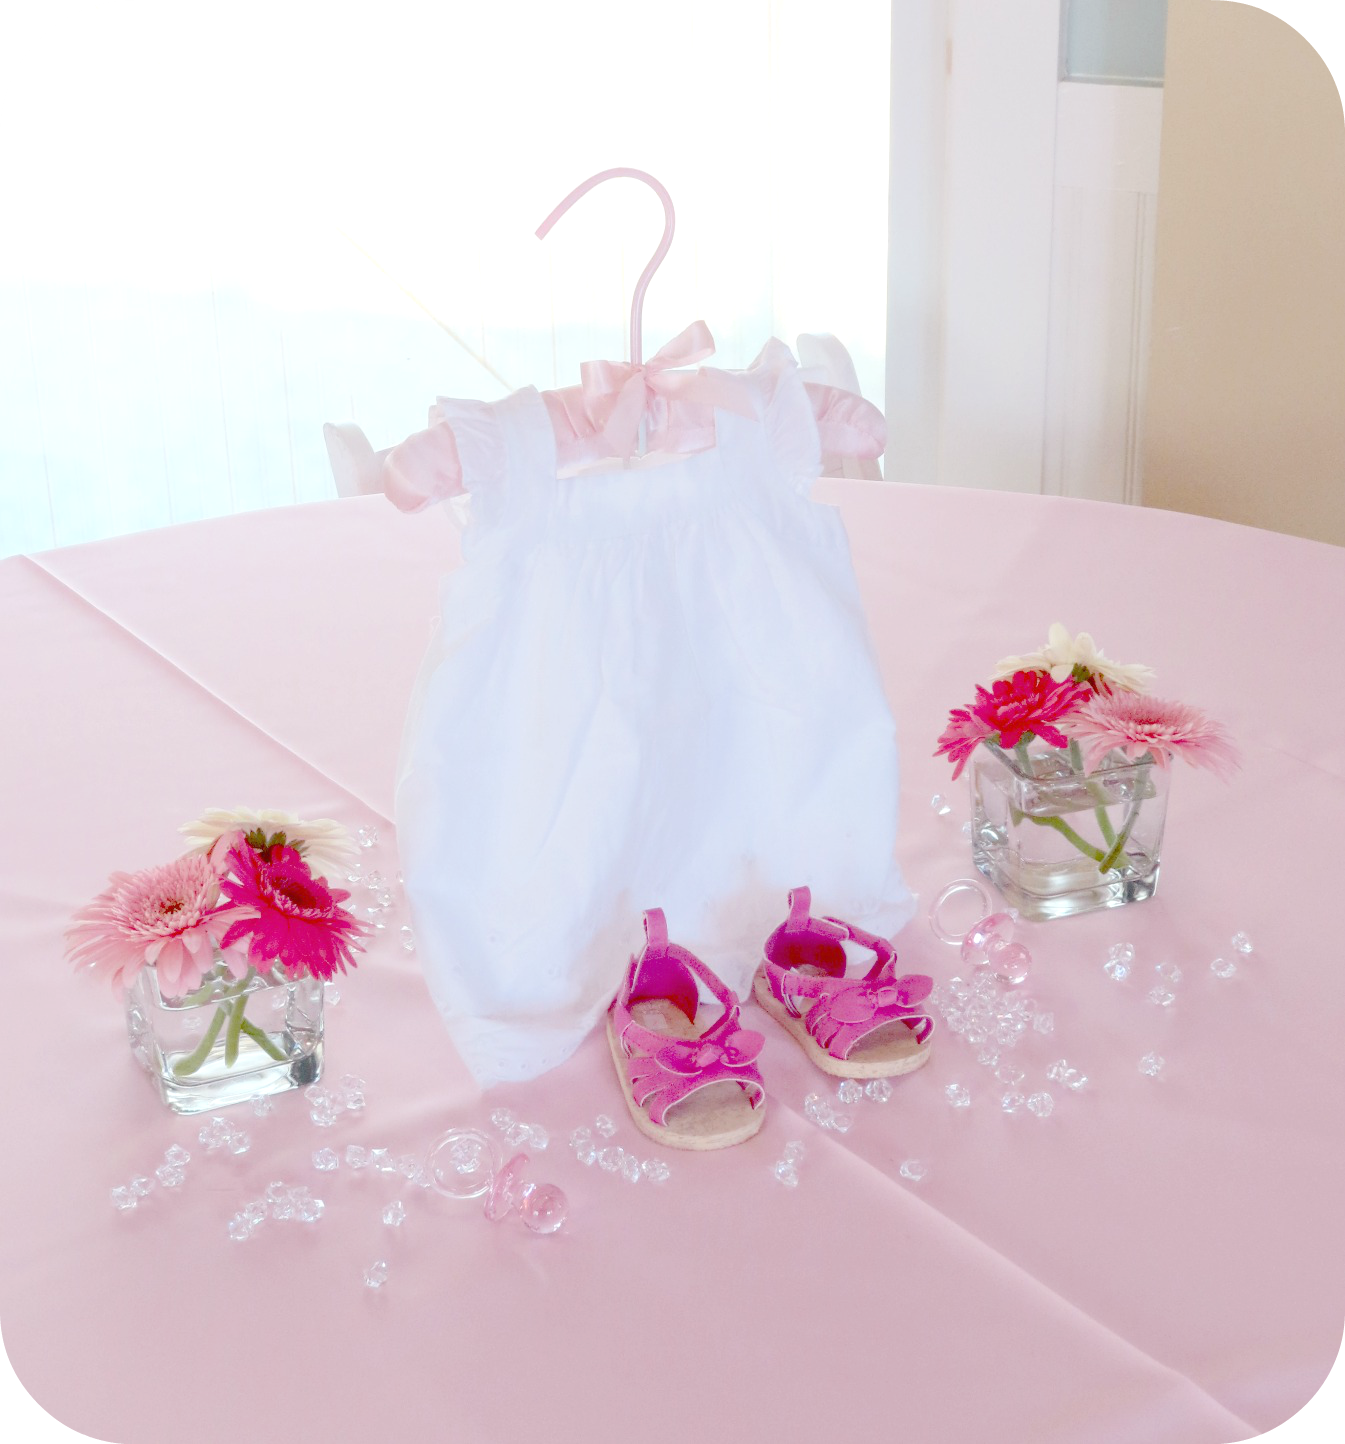 Baby Shower Decorations Table Settings: Baby Girl Shower Table Centerpiece